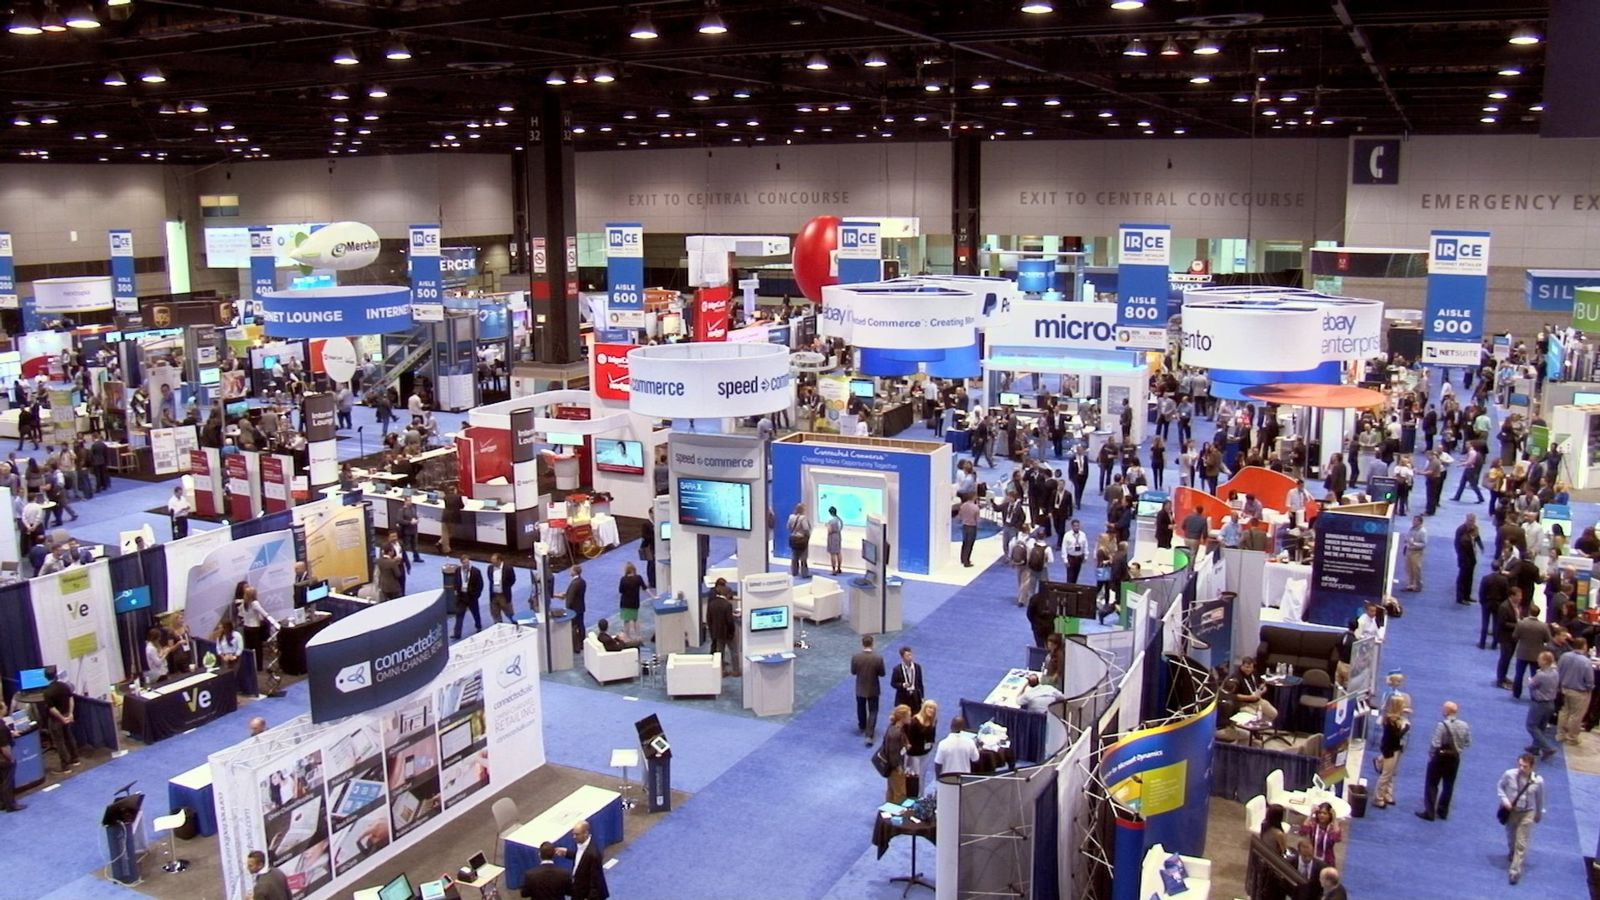 Maximize Your Trade Show Booth With Corporate Video Marketing